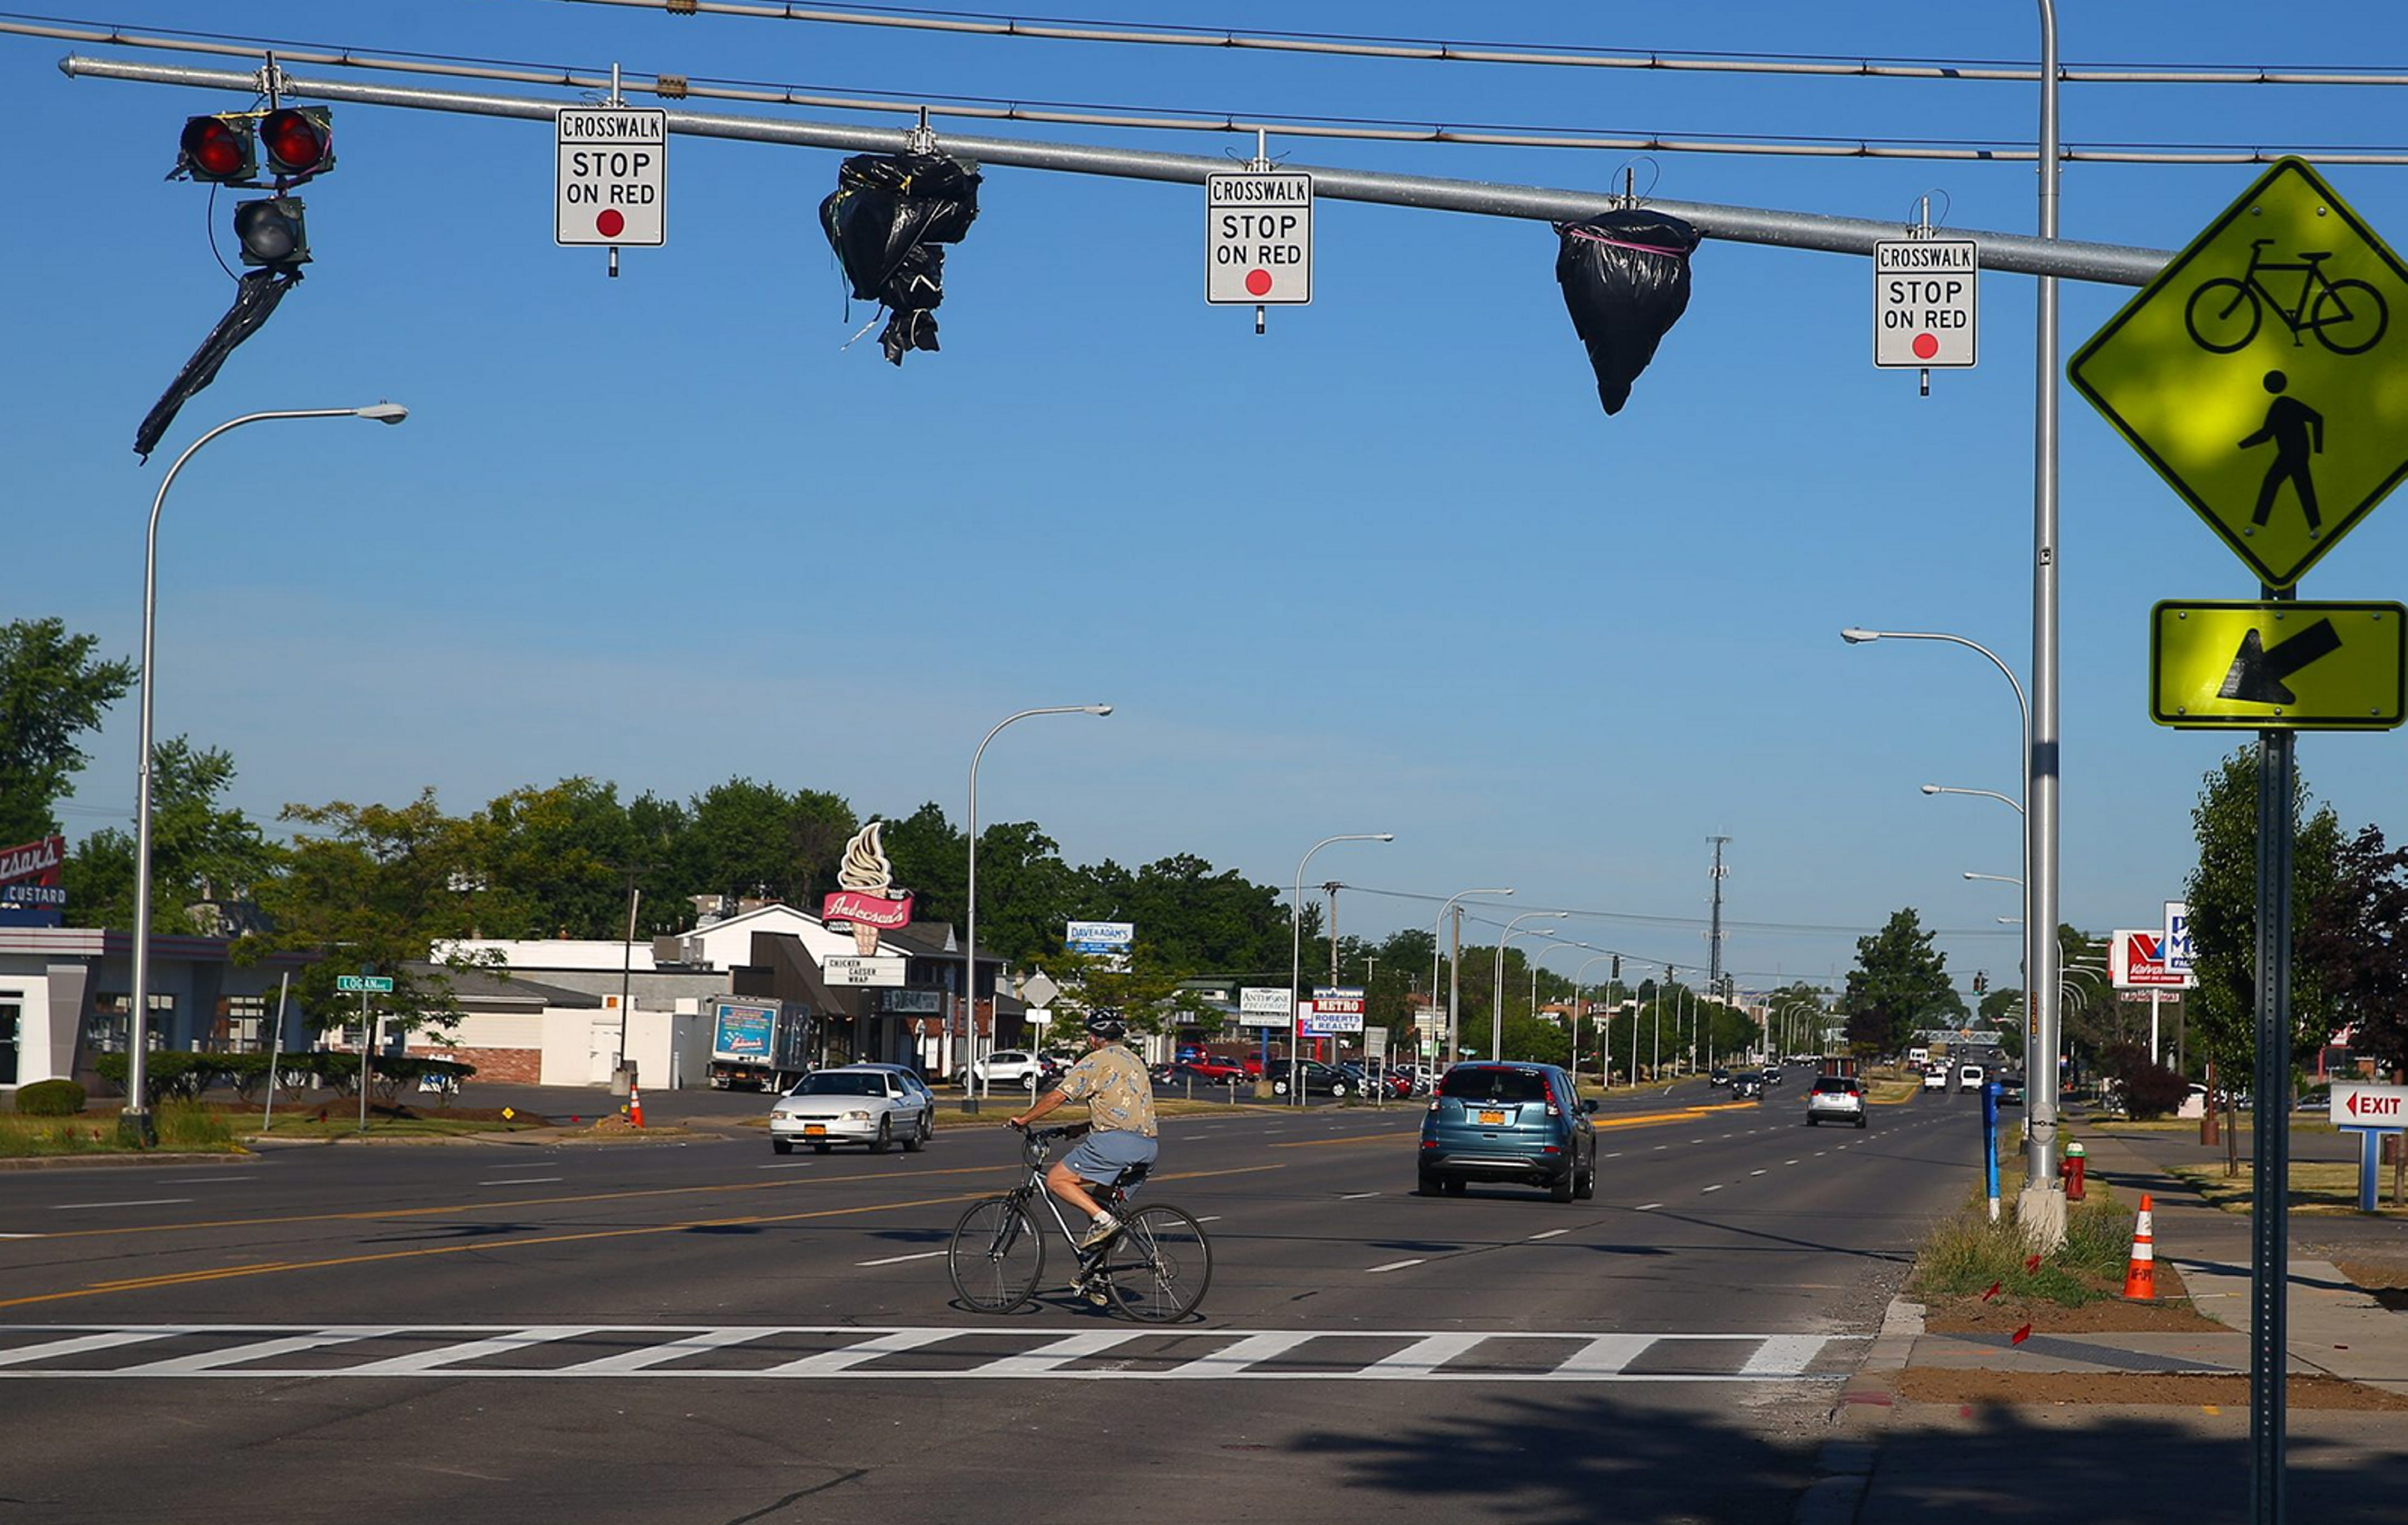 The newly installed high-intensity activated crosswalk (HAWK) signal at the Rails to Trails crossing on Sheridan Drive between Logan and Vicksburg avenues in the Town of Tonawanda began operating Friday.